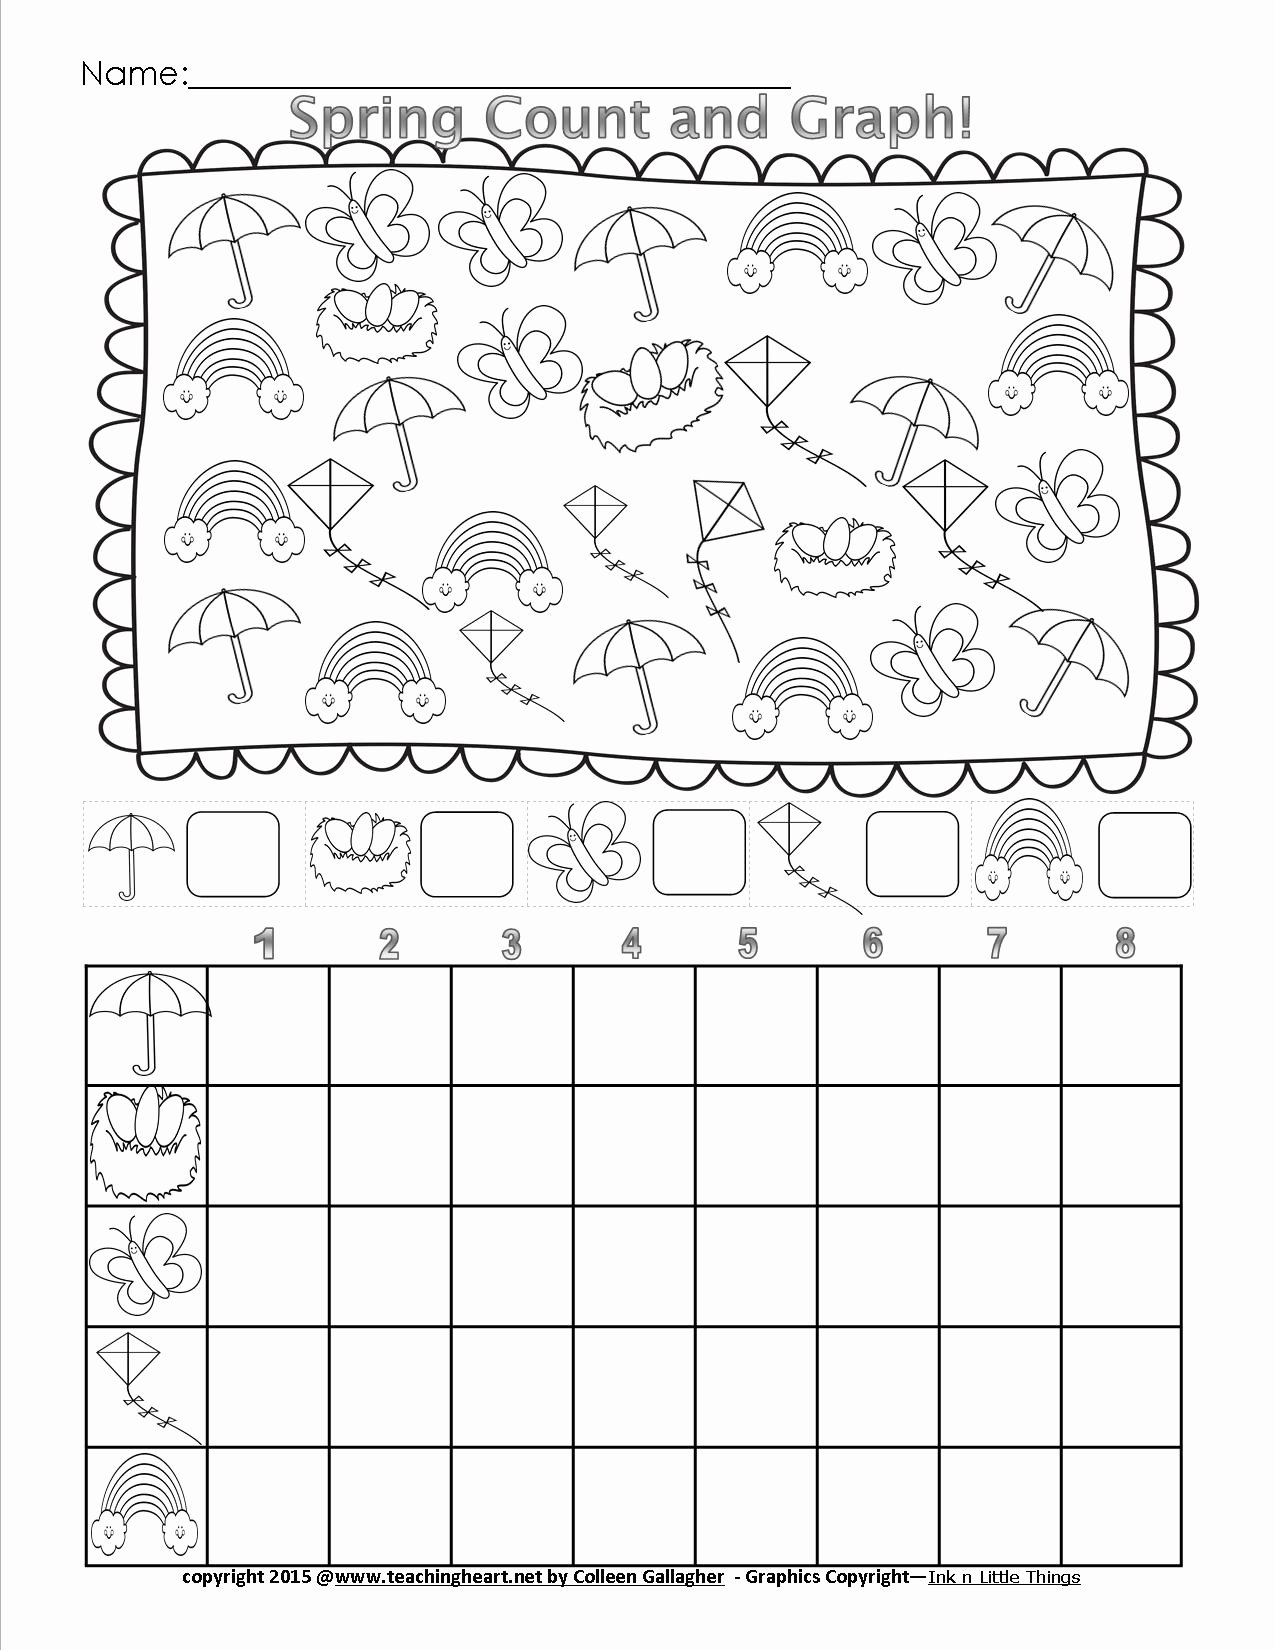 Graph Worksheets for Preschoolers Inspirational Spring Count and Graph Free Teaching Heart Blog Graphing